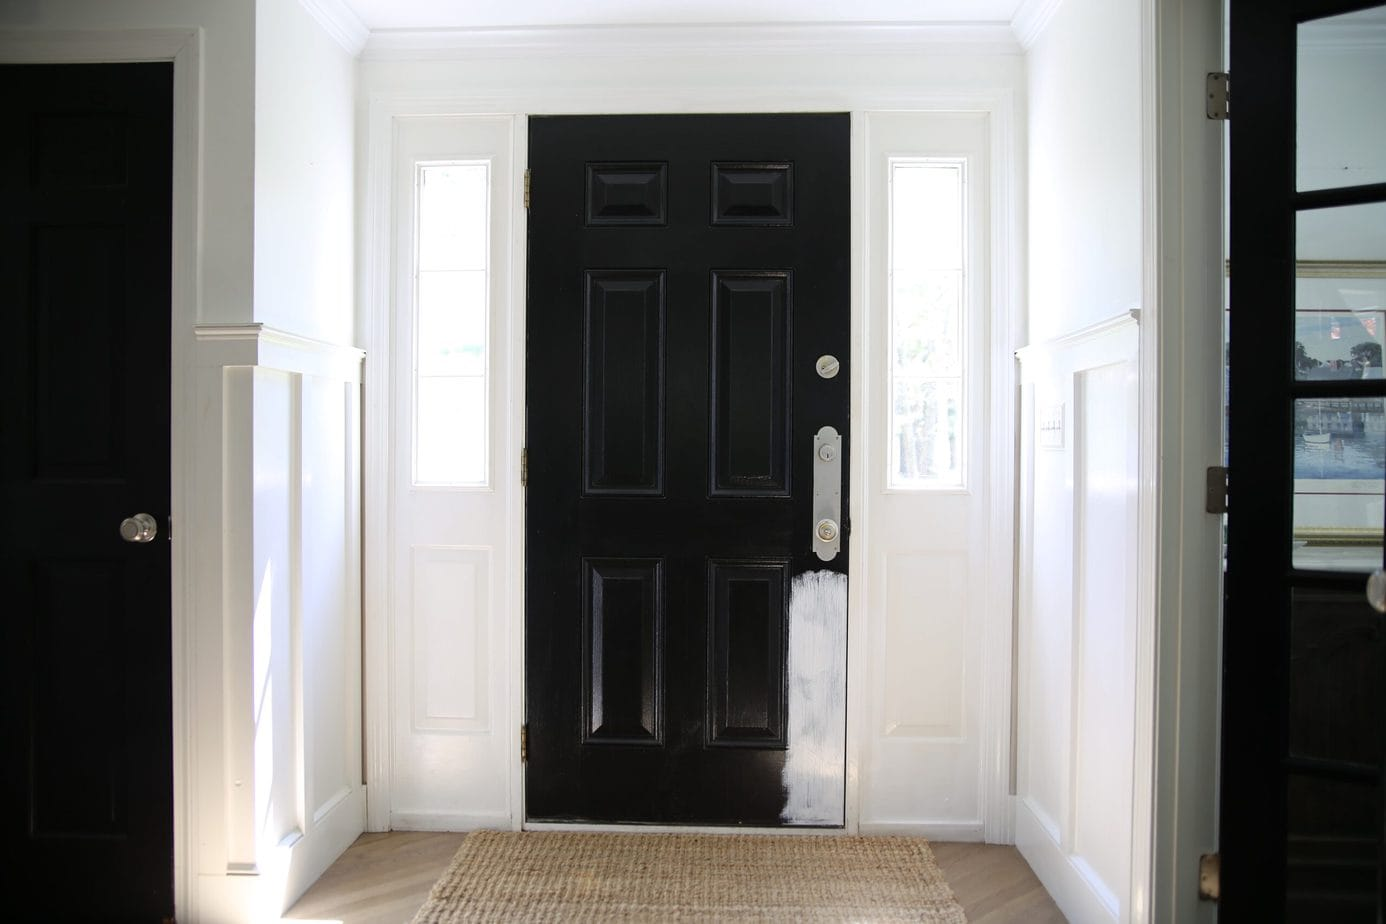 Black doors in white foyer